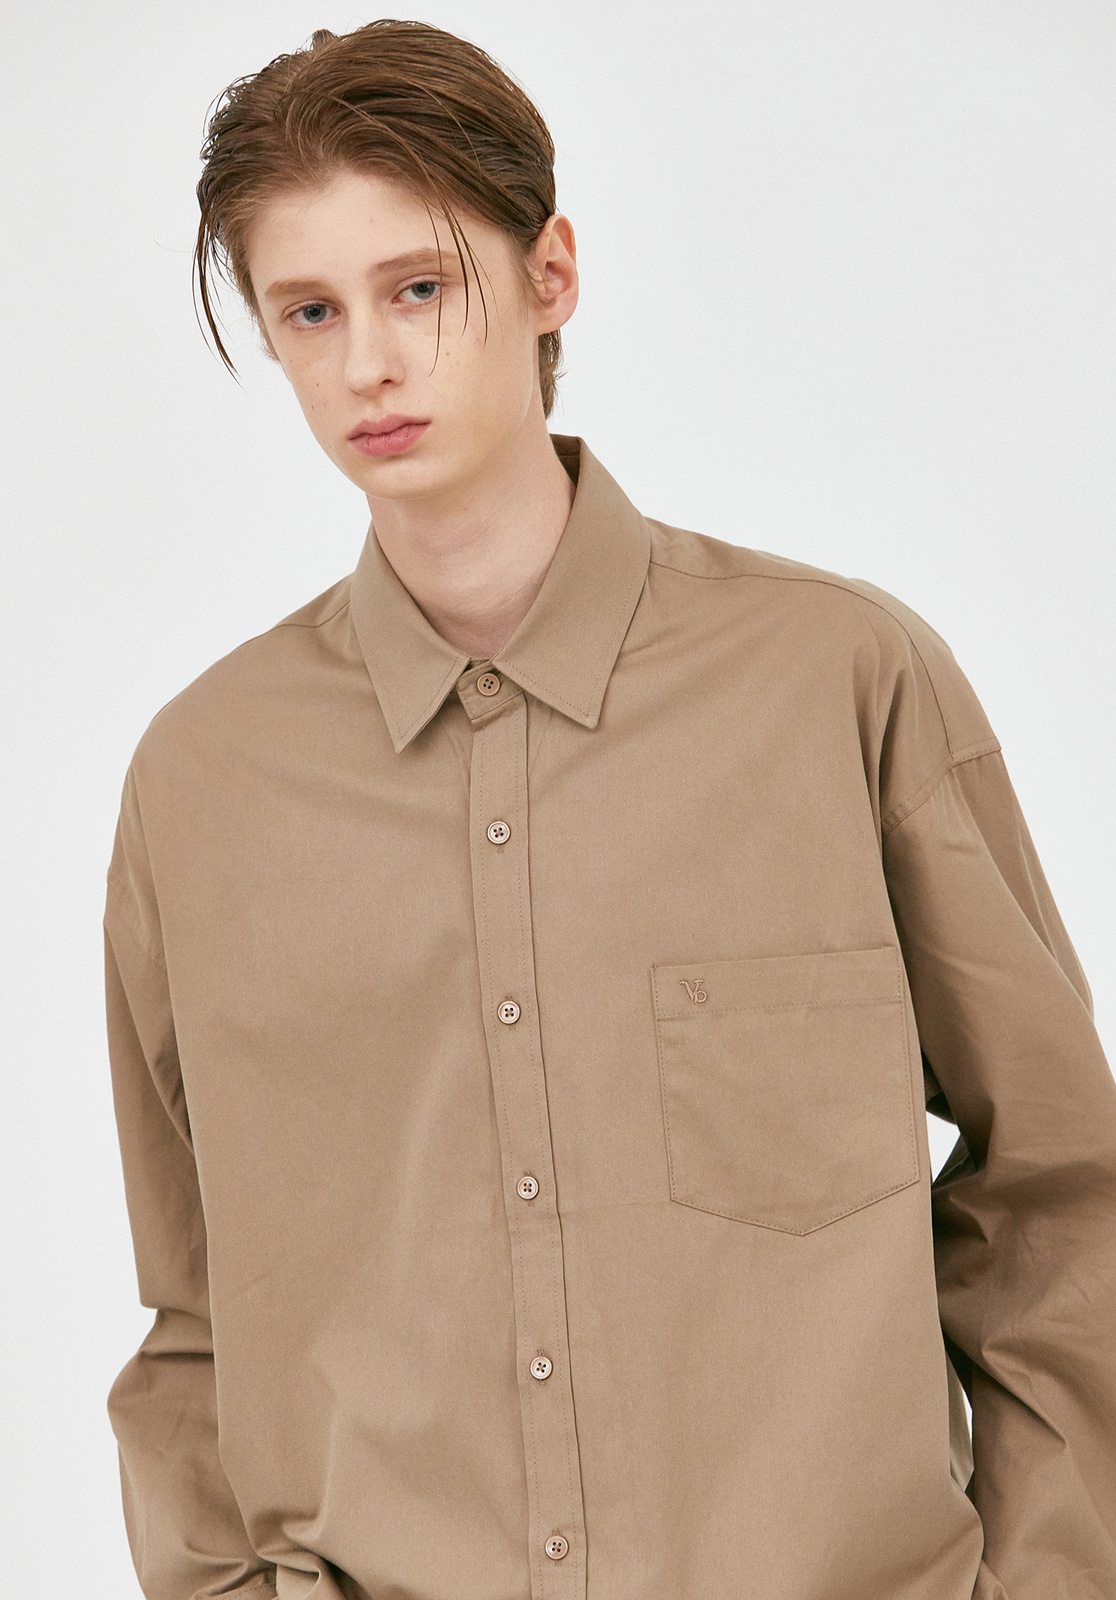 V457 MINIMAL POCKET OVERFIT SHIRTS  DARK BEIGE